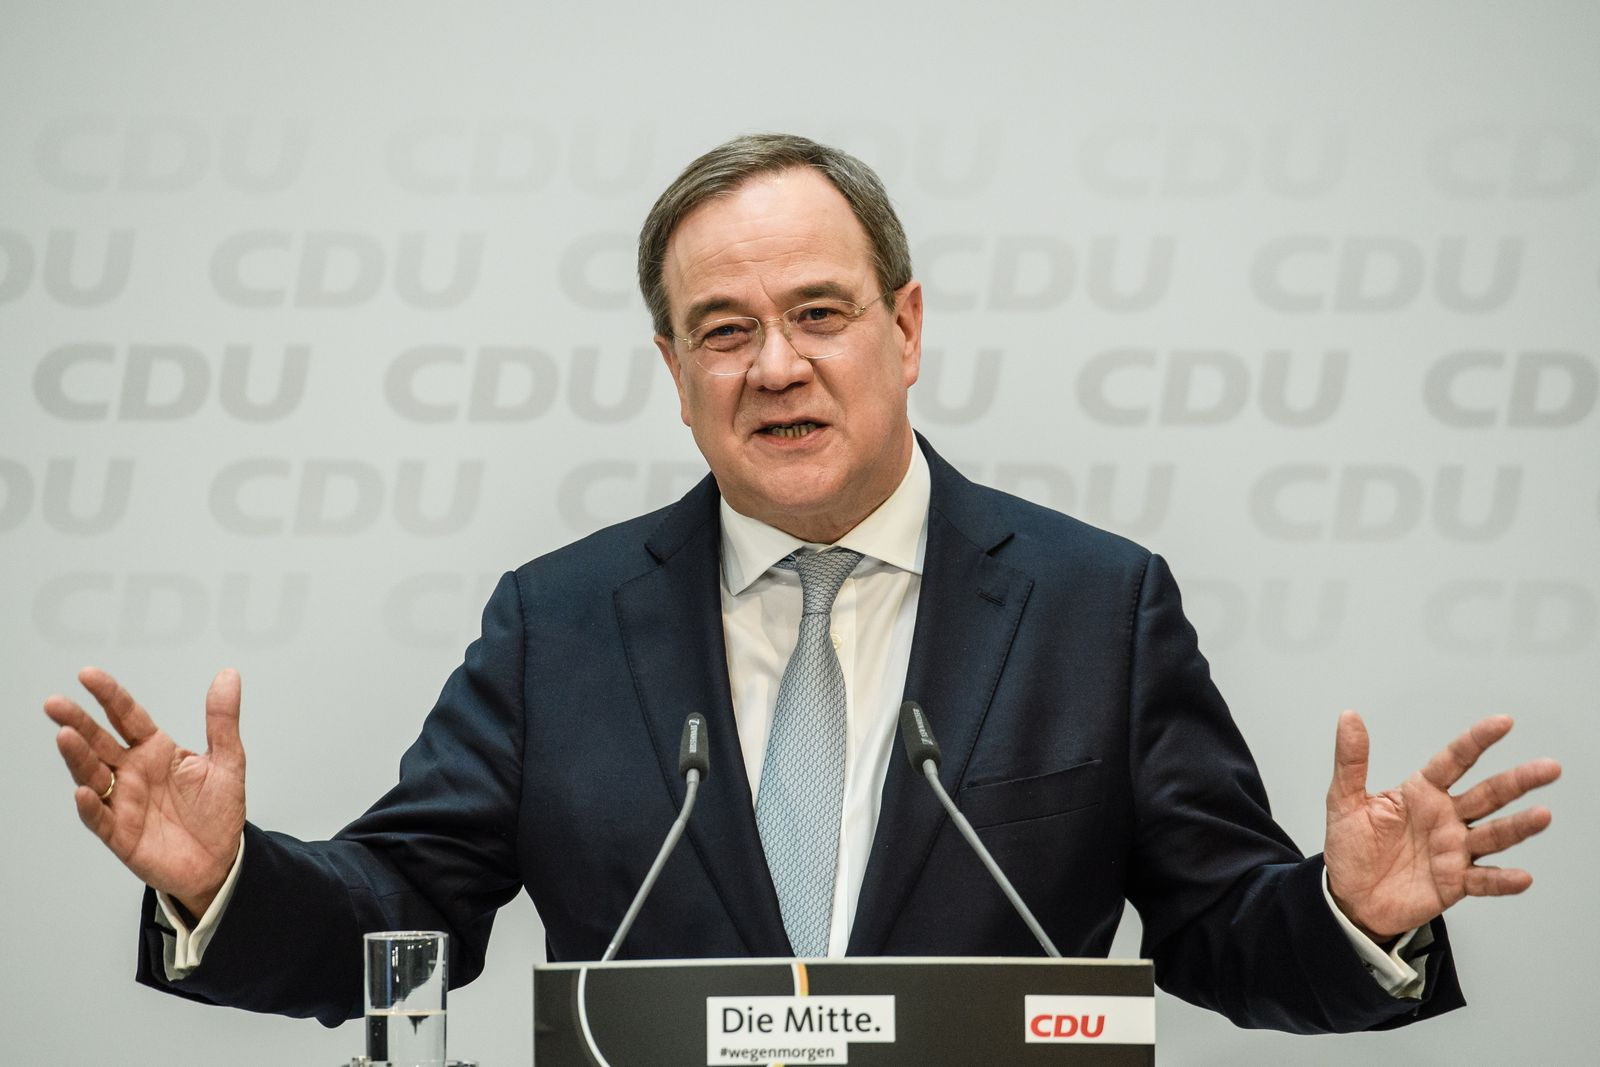 CDU Chairman Laschet speaks after loss of votes in regional state elections in Baden-Wuerttemberg and Rhineland-Palatinate